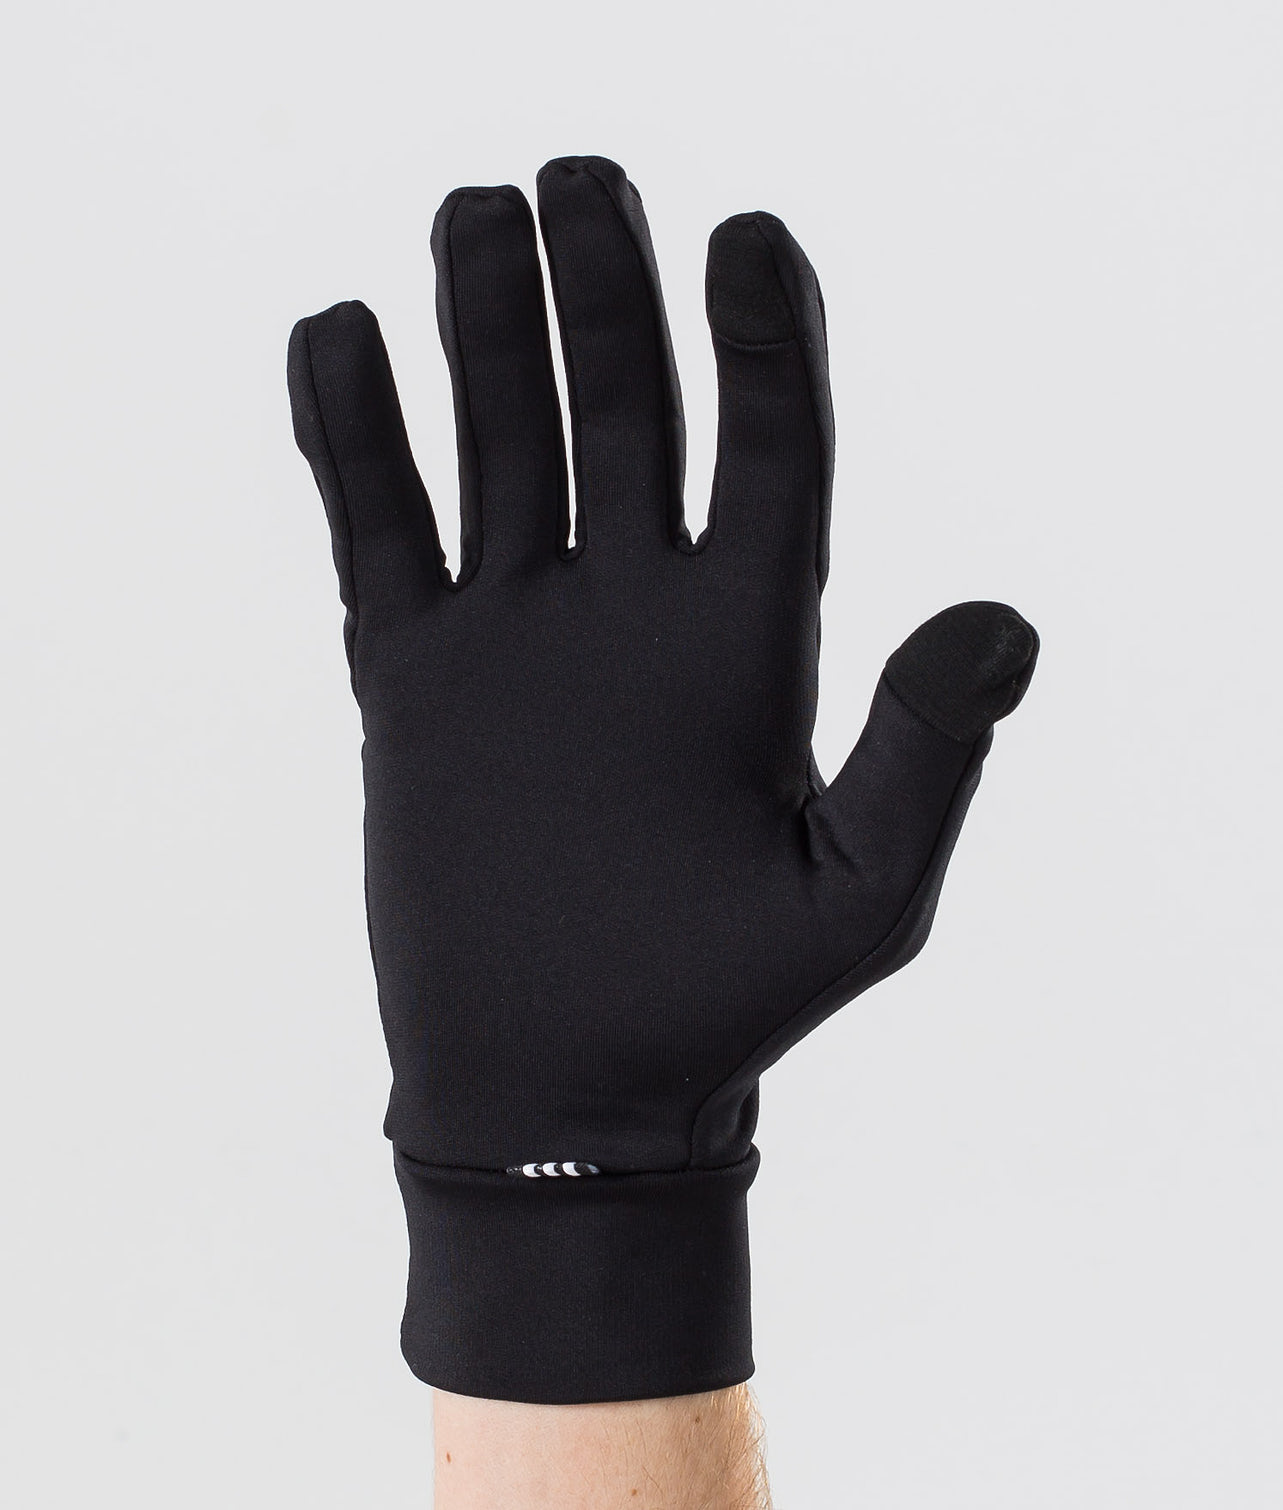 Buy Techy Ski Gloves from Adidas Originals at Ridestore.com - Always free shipping, free returns and 30 days money back guarantee